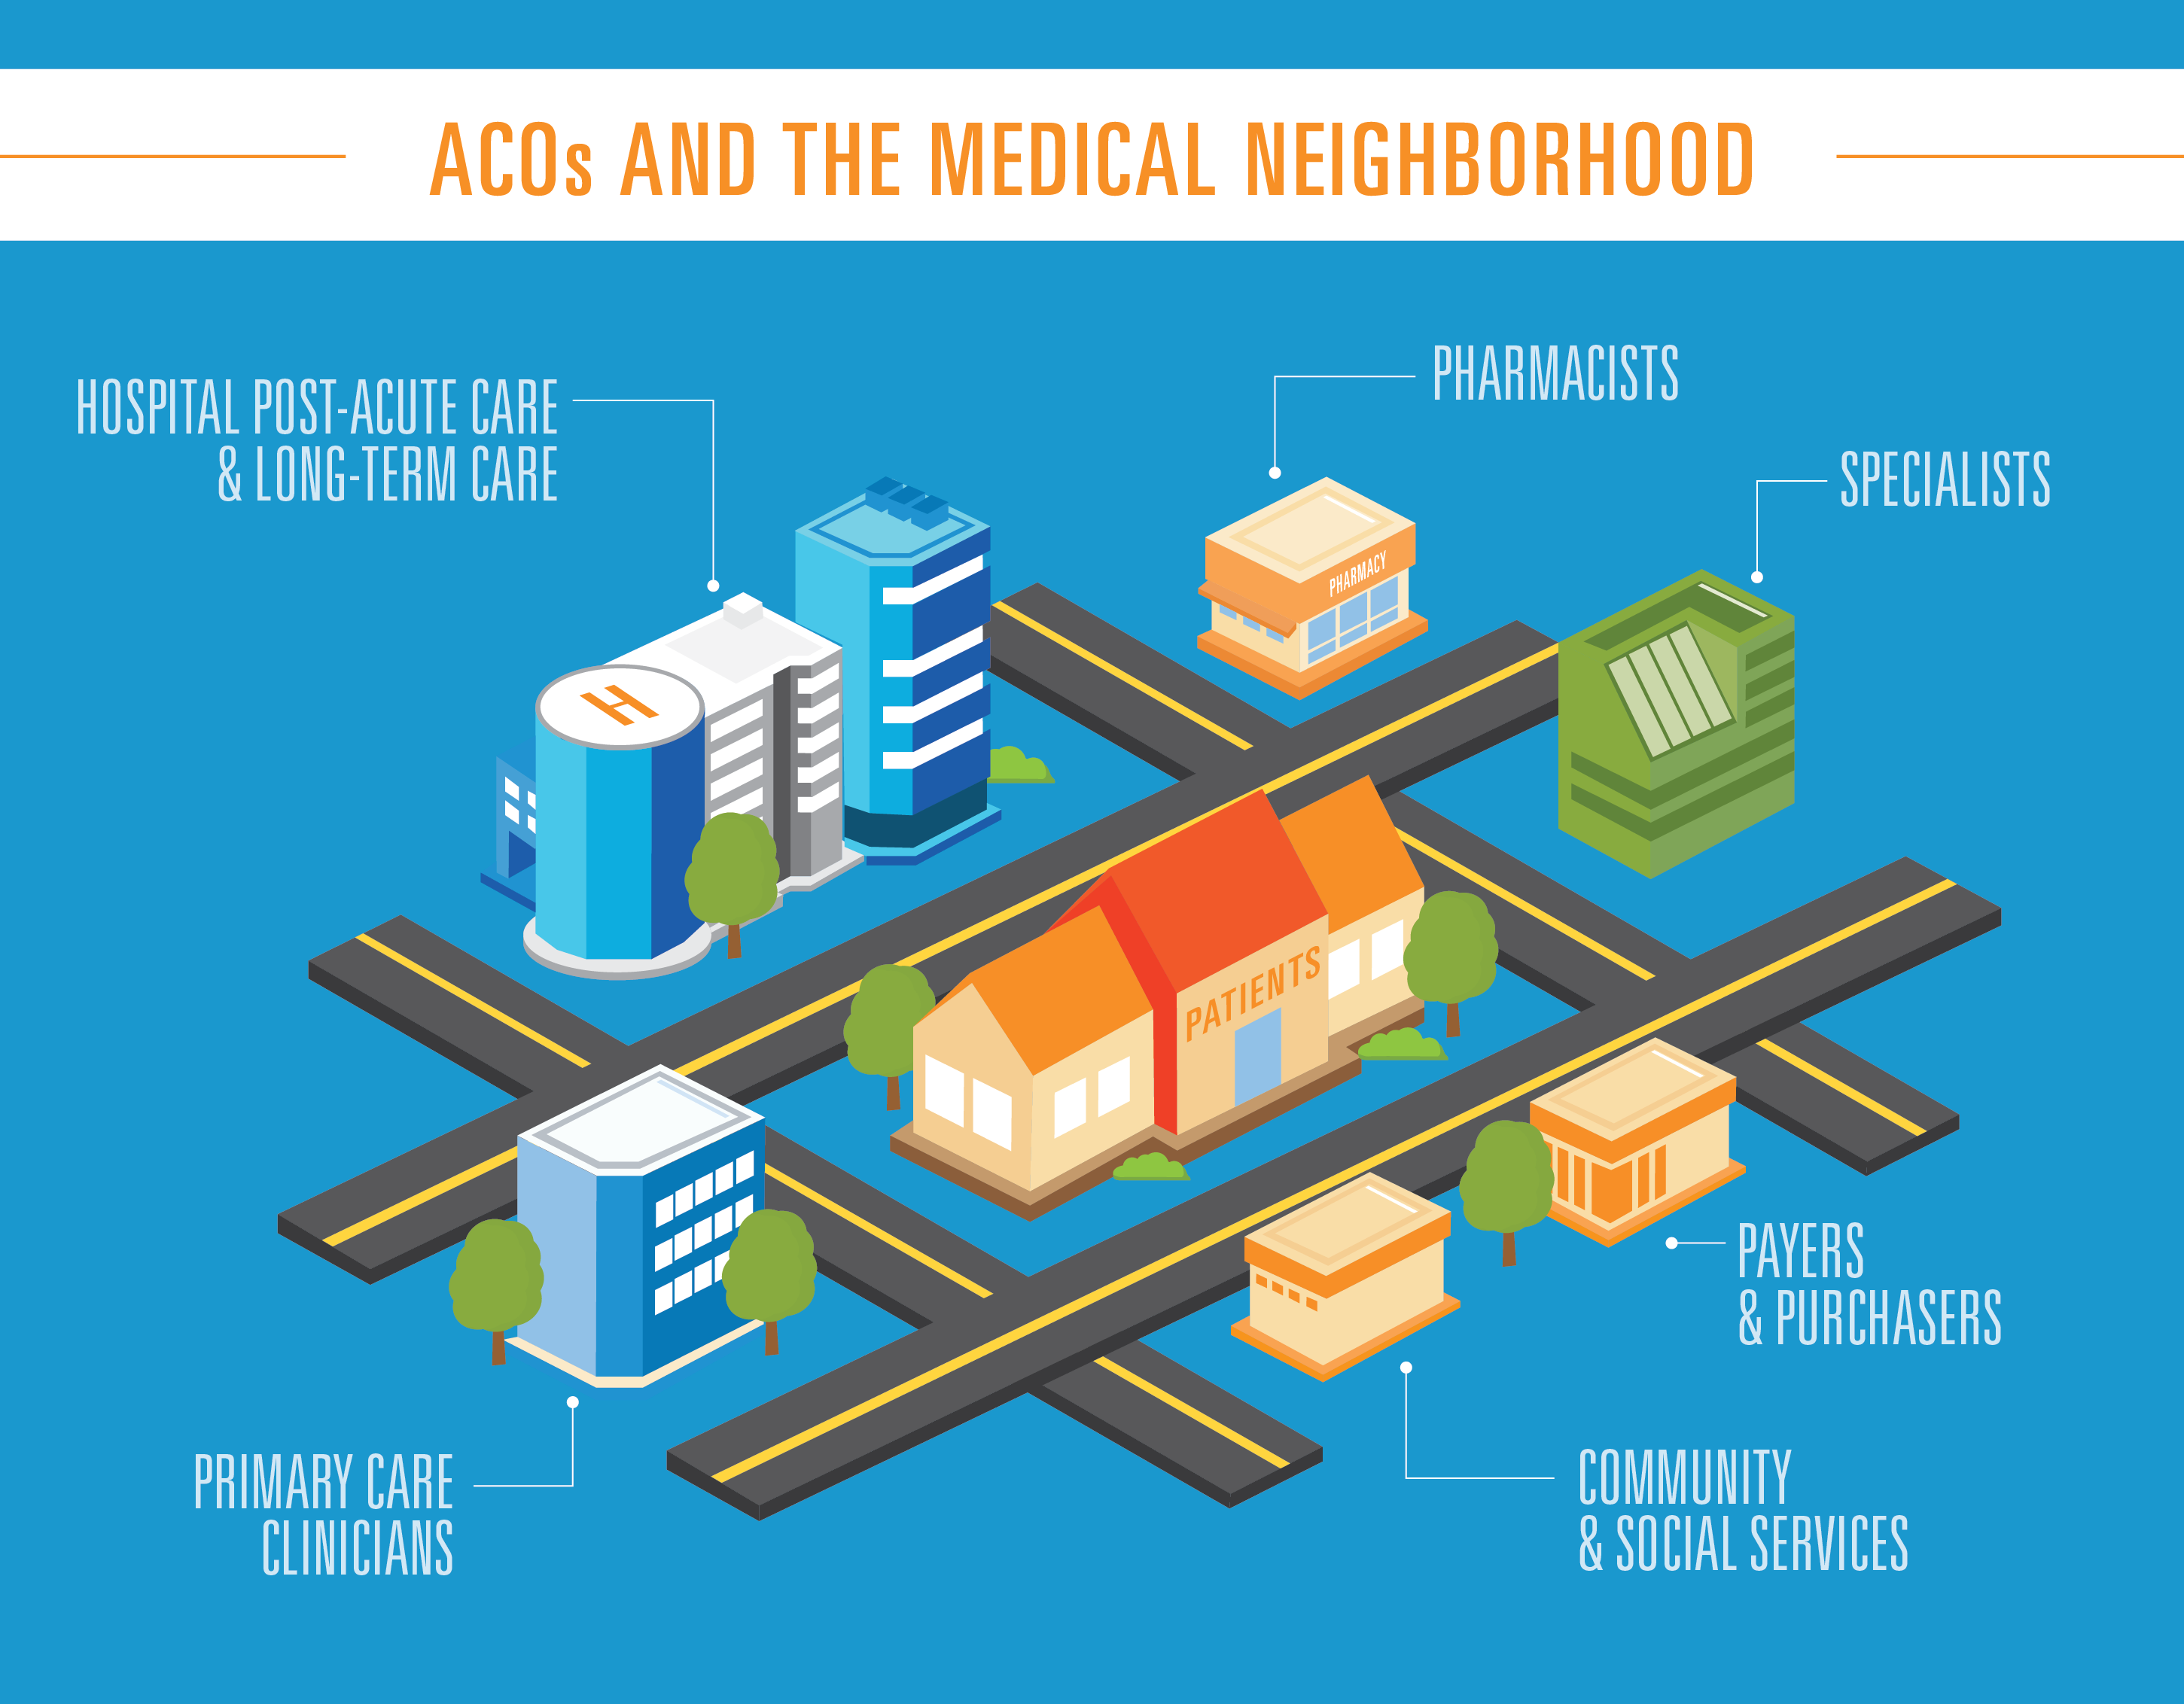 ACOs and the medical neighborhood